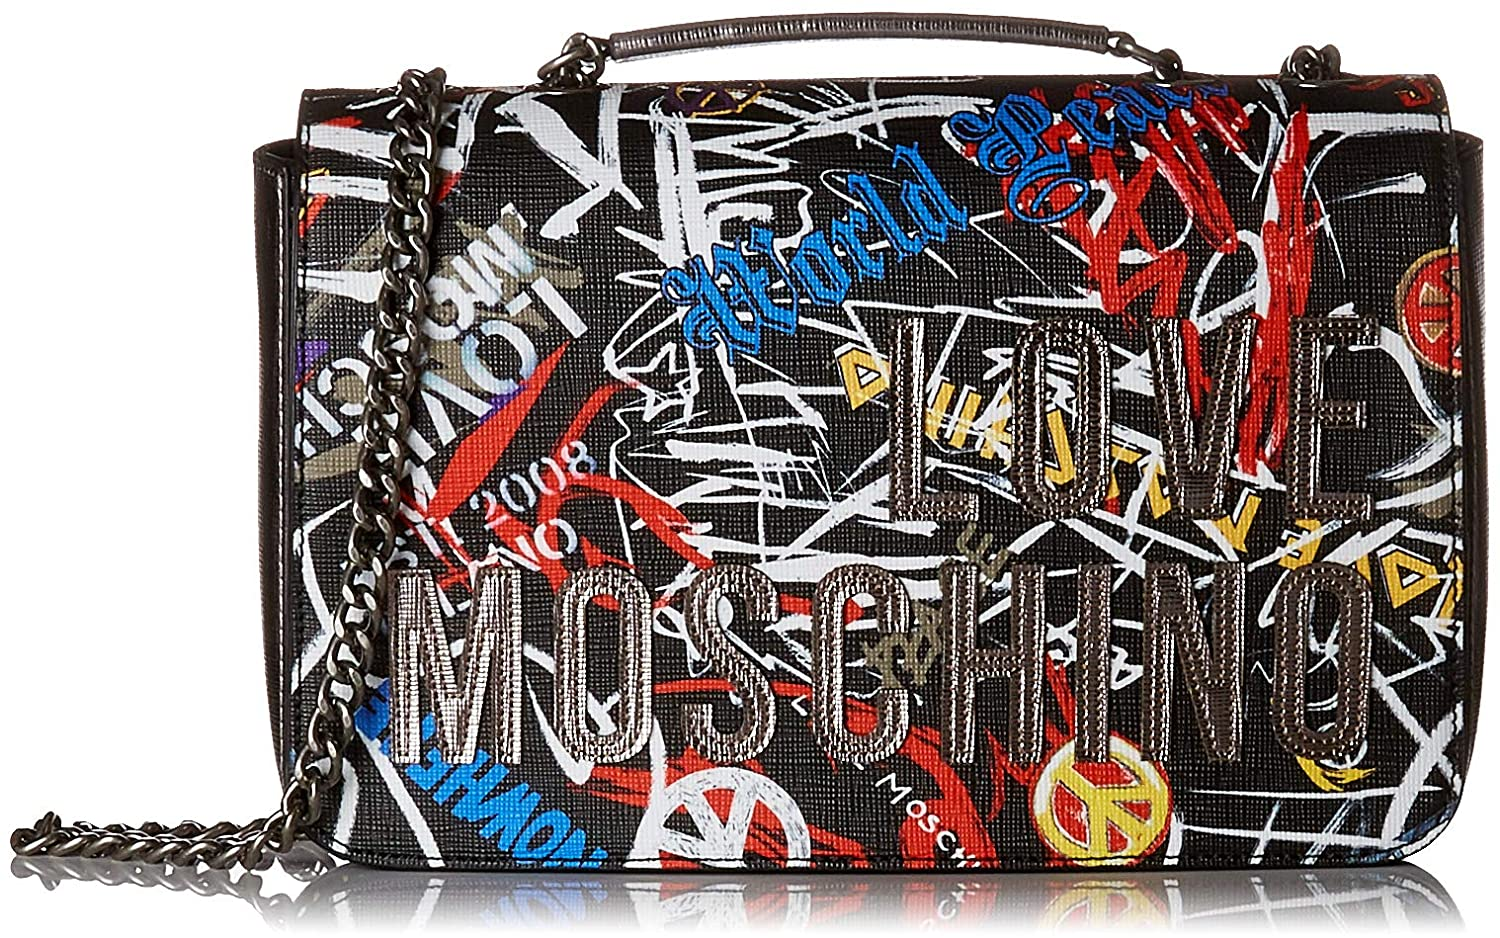 Love Moschino Borsa Digital Print Pvc, Women's Satchel, Black (Nero), 6x18x29 cm (B x H T) Women's Satchel JC4090PP16LN0